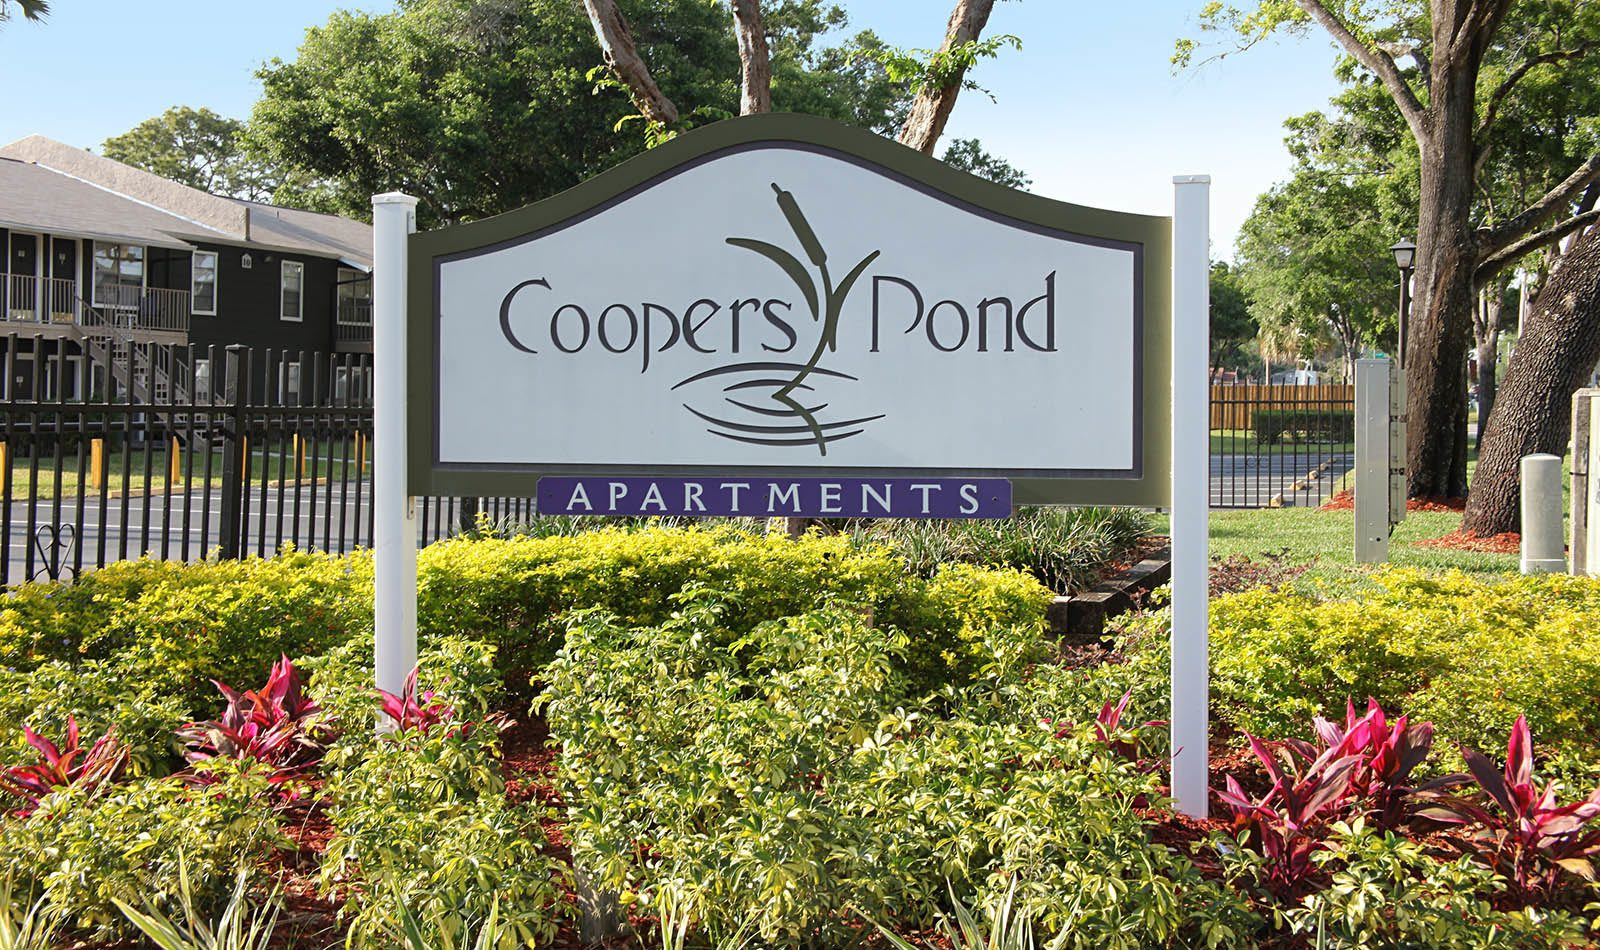 Signage at Coopers Pond Apartments in Tampa, FL